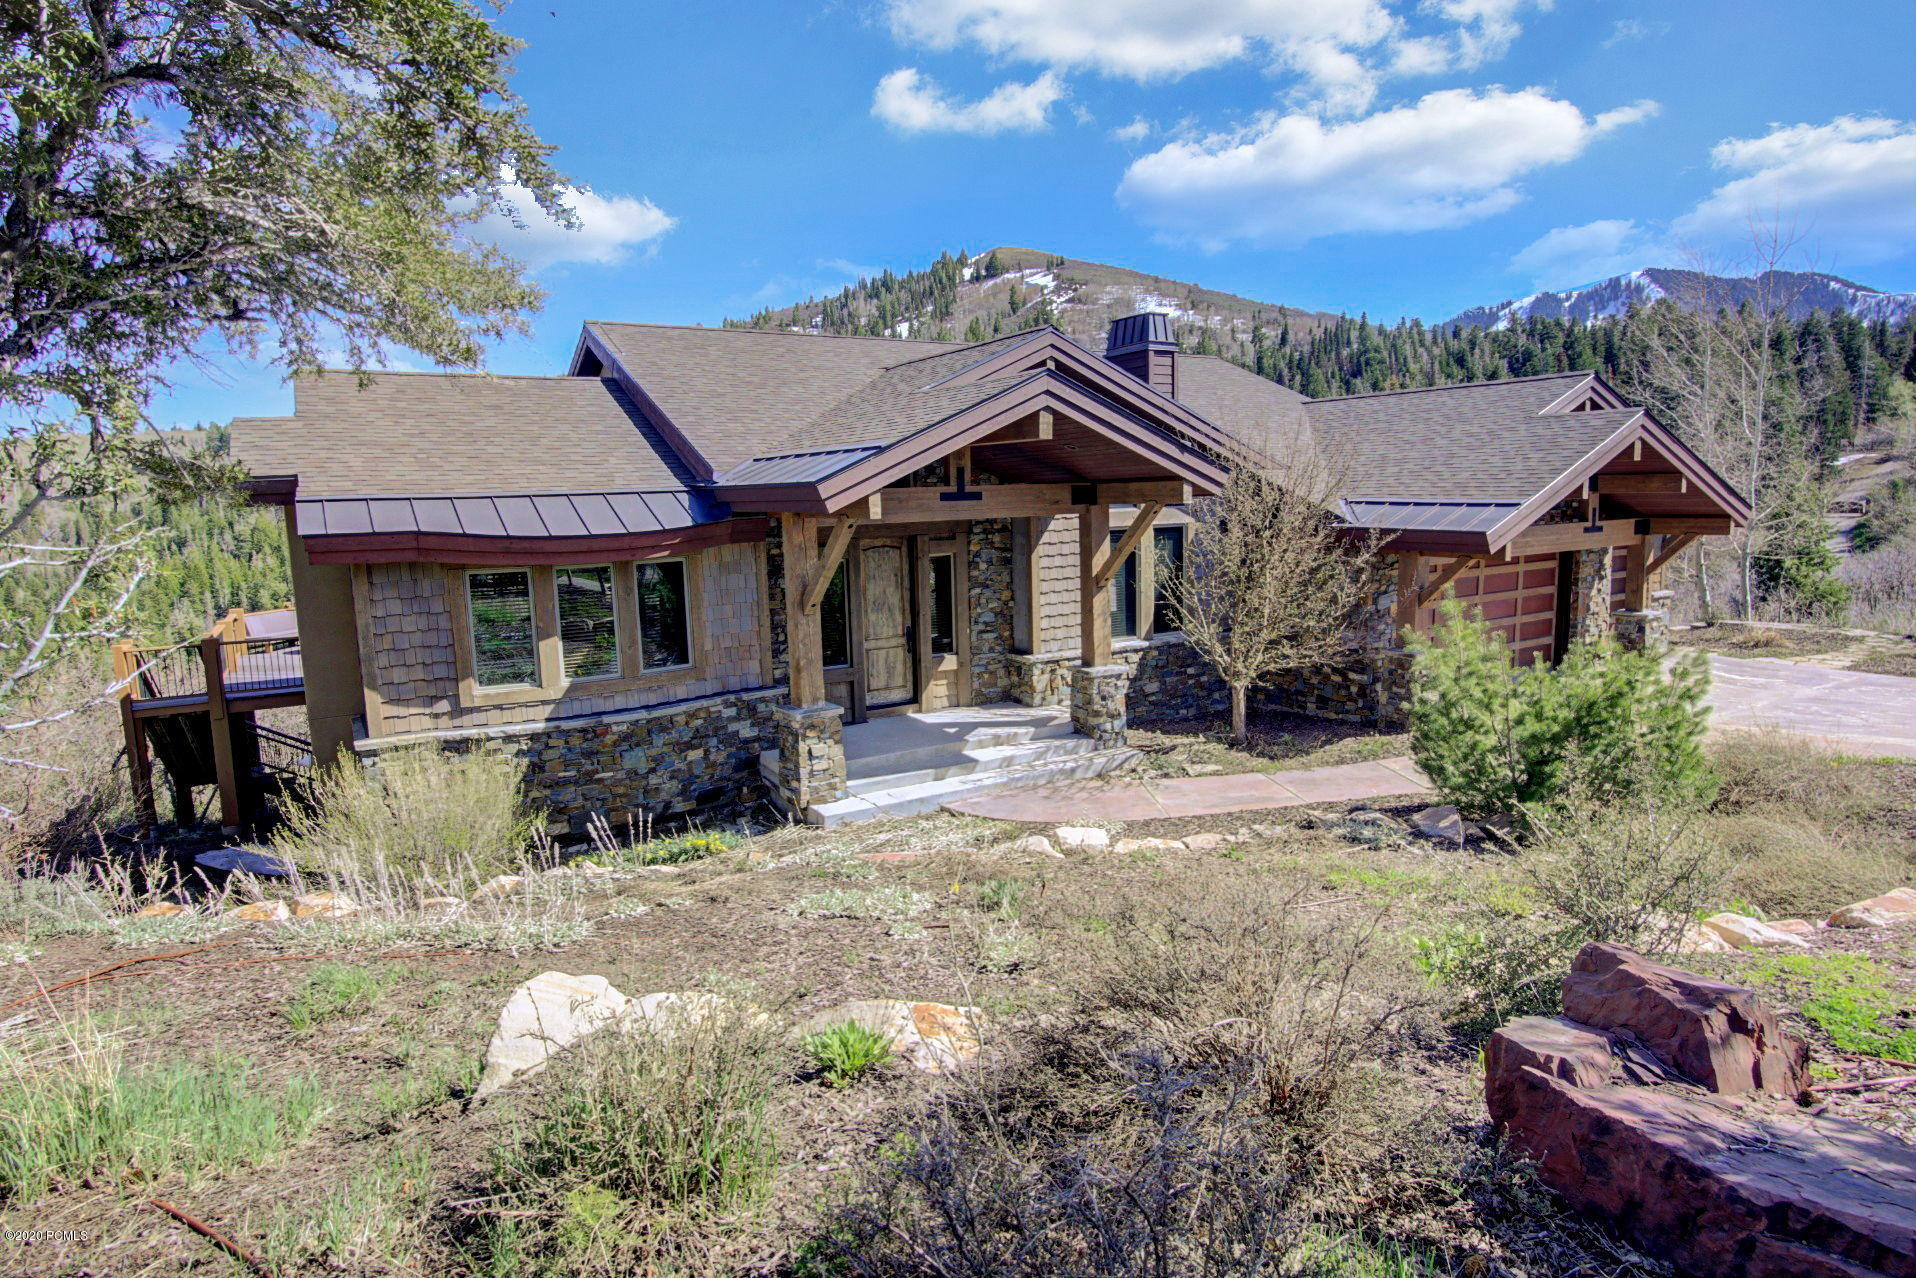 6864 Saddle Court, Park City, Utah 84098, 5 Bedrooms Bedrooms, ,6 BathroomsBathrooms,Single Family,For Sale,Saddle,20190109112430415765000000